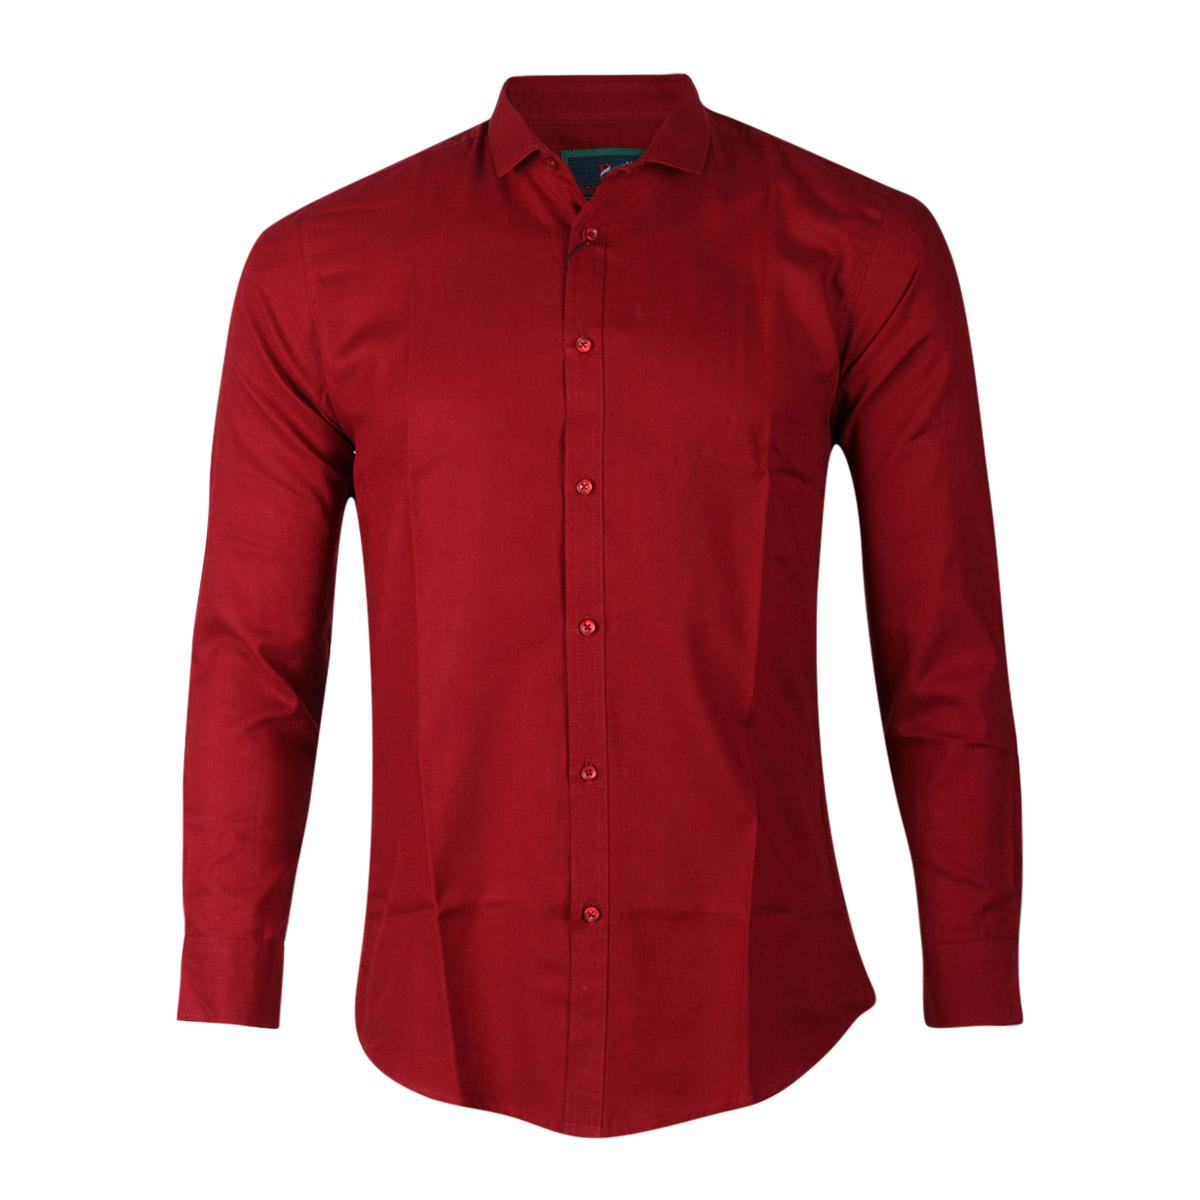 deb84a2f2fc Shirts For Men - Buy Men s Shirts In Bangladesh Online